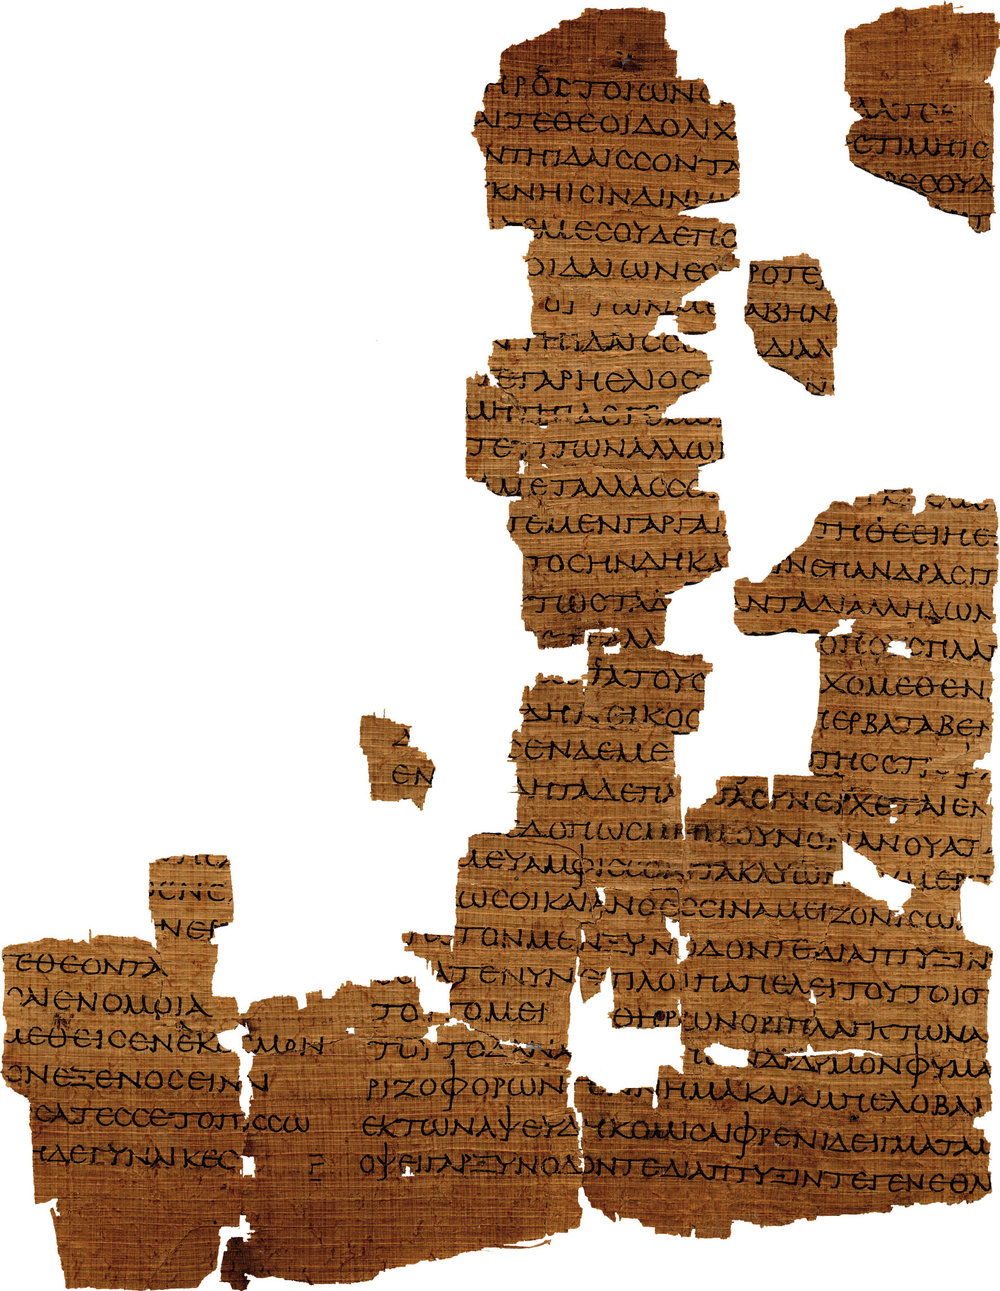 1ST CENTURY AD PAPYRUS CONTAINING FRAGMENTS OF EMPEDOCLES' POEM  ON NATURE